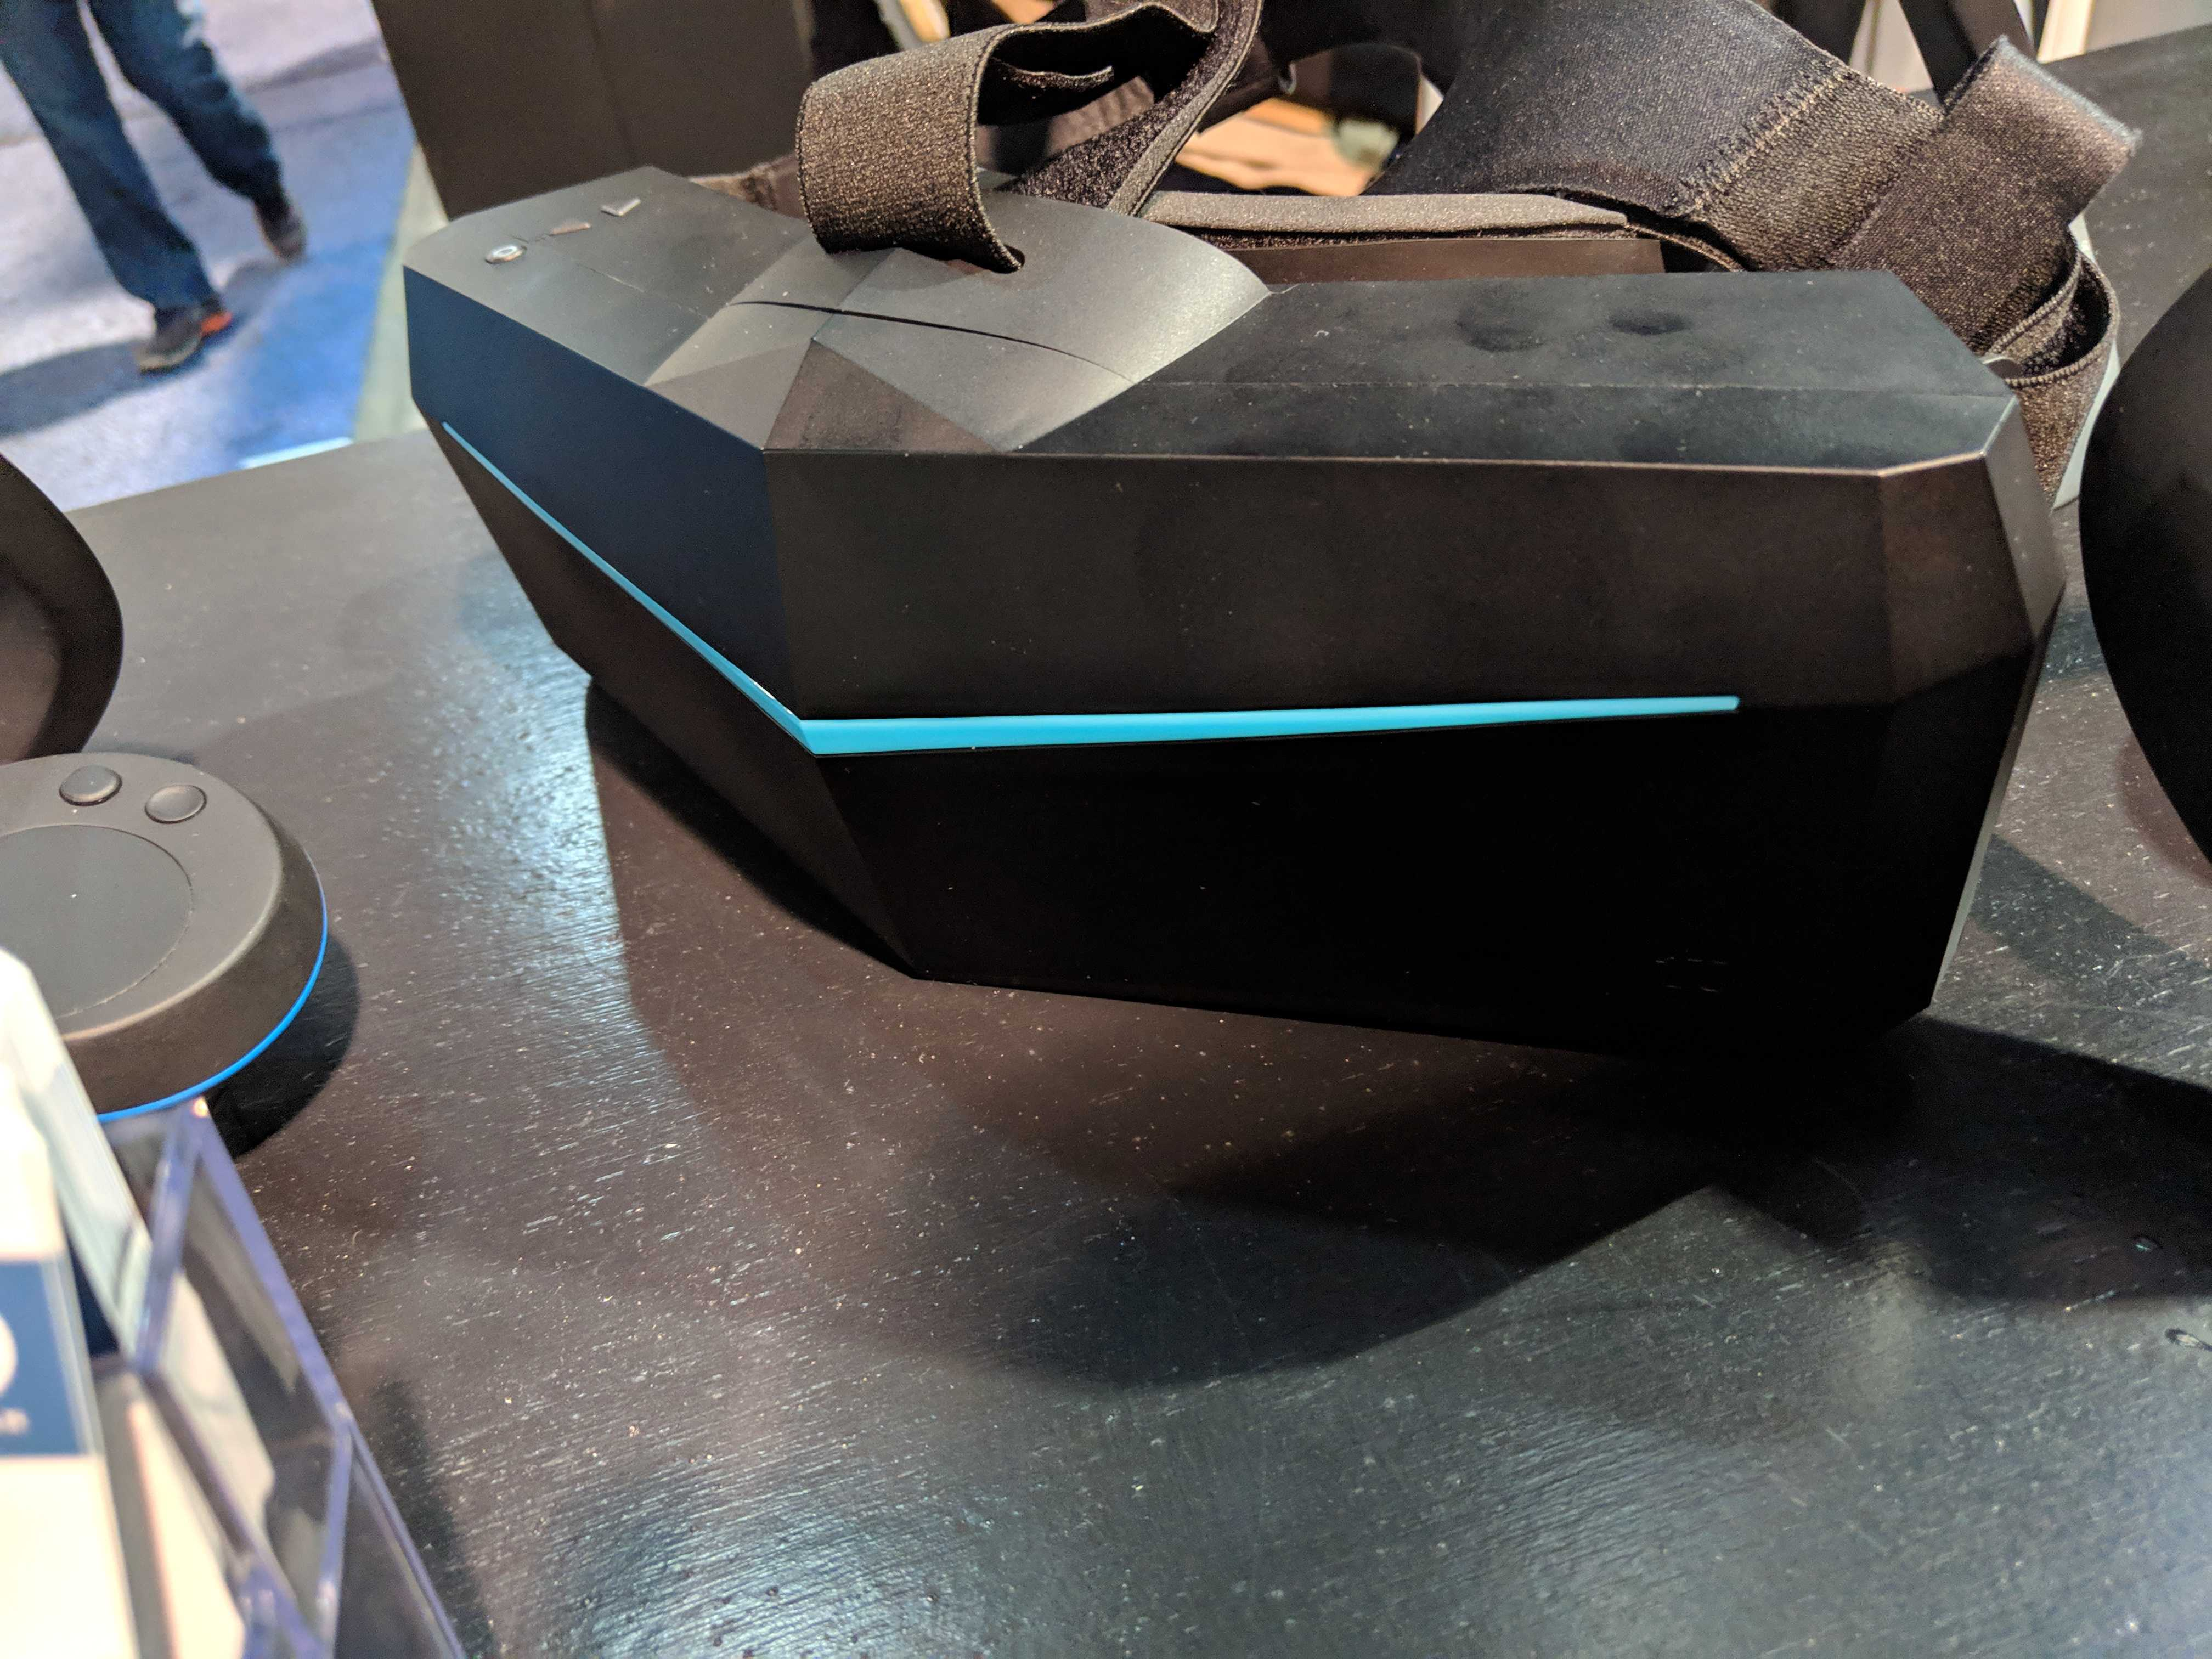 pimax controllers ces 2019 headset on table